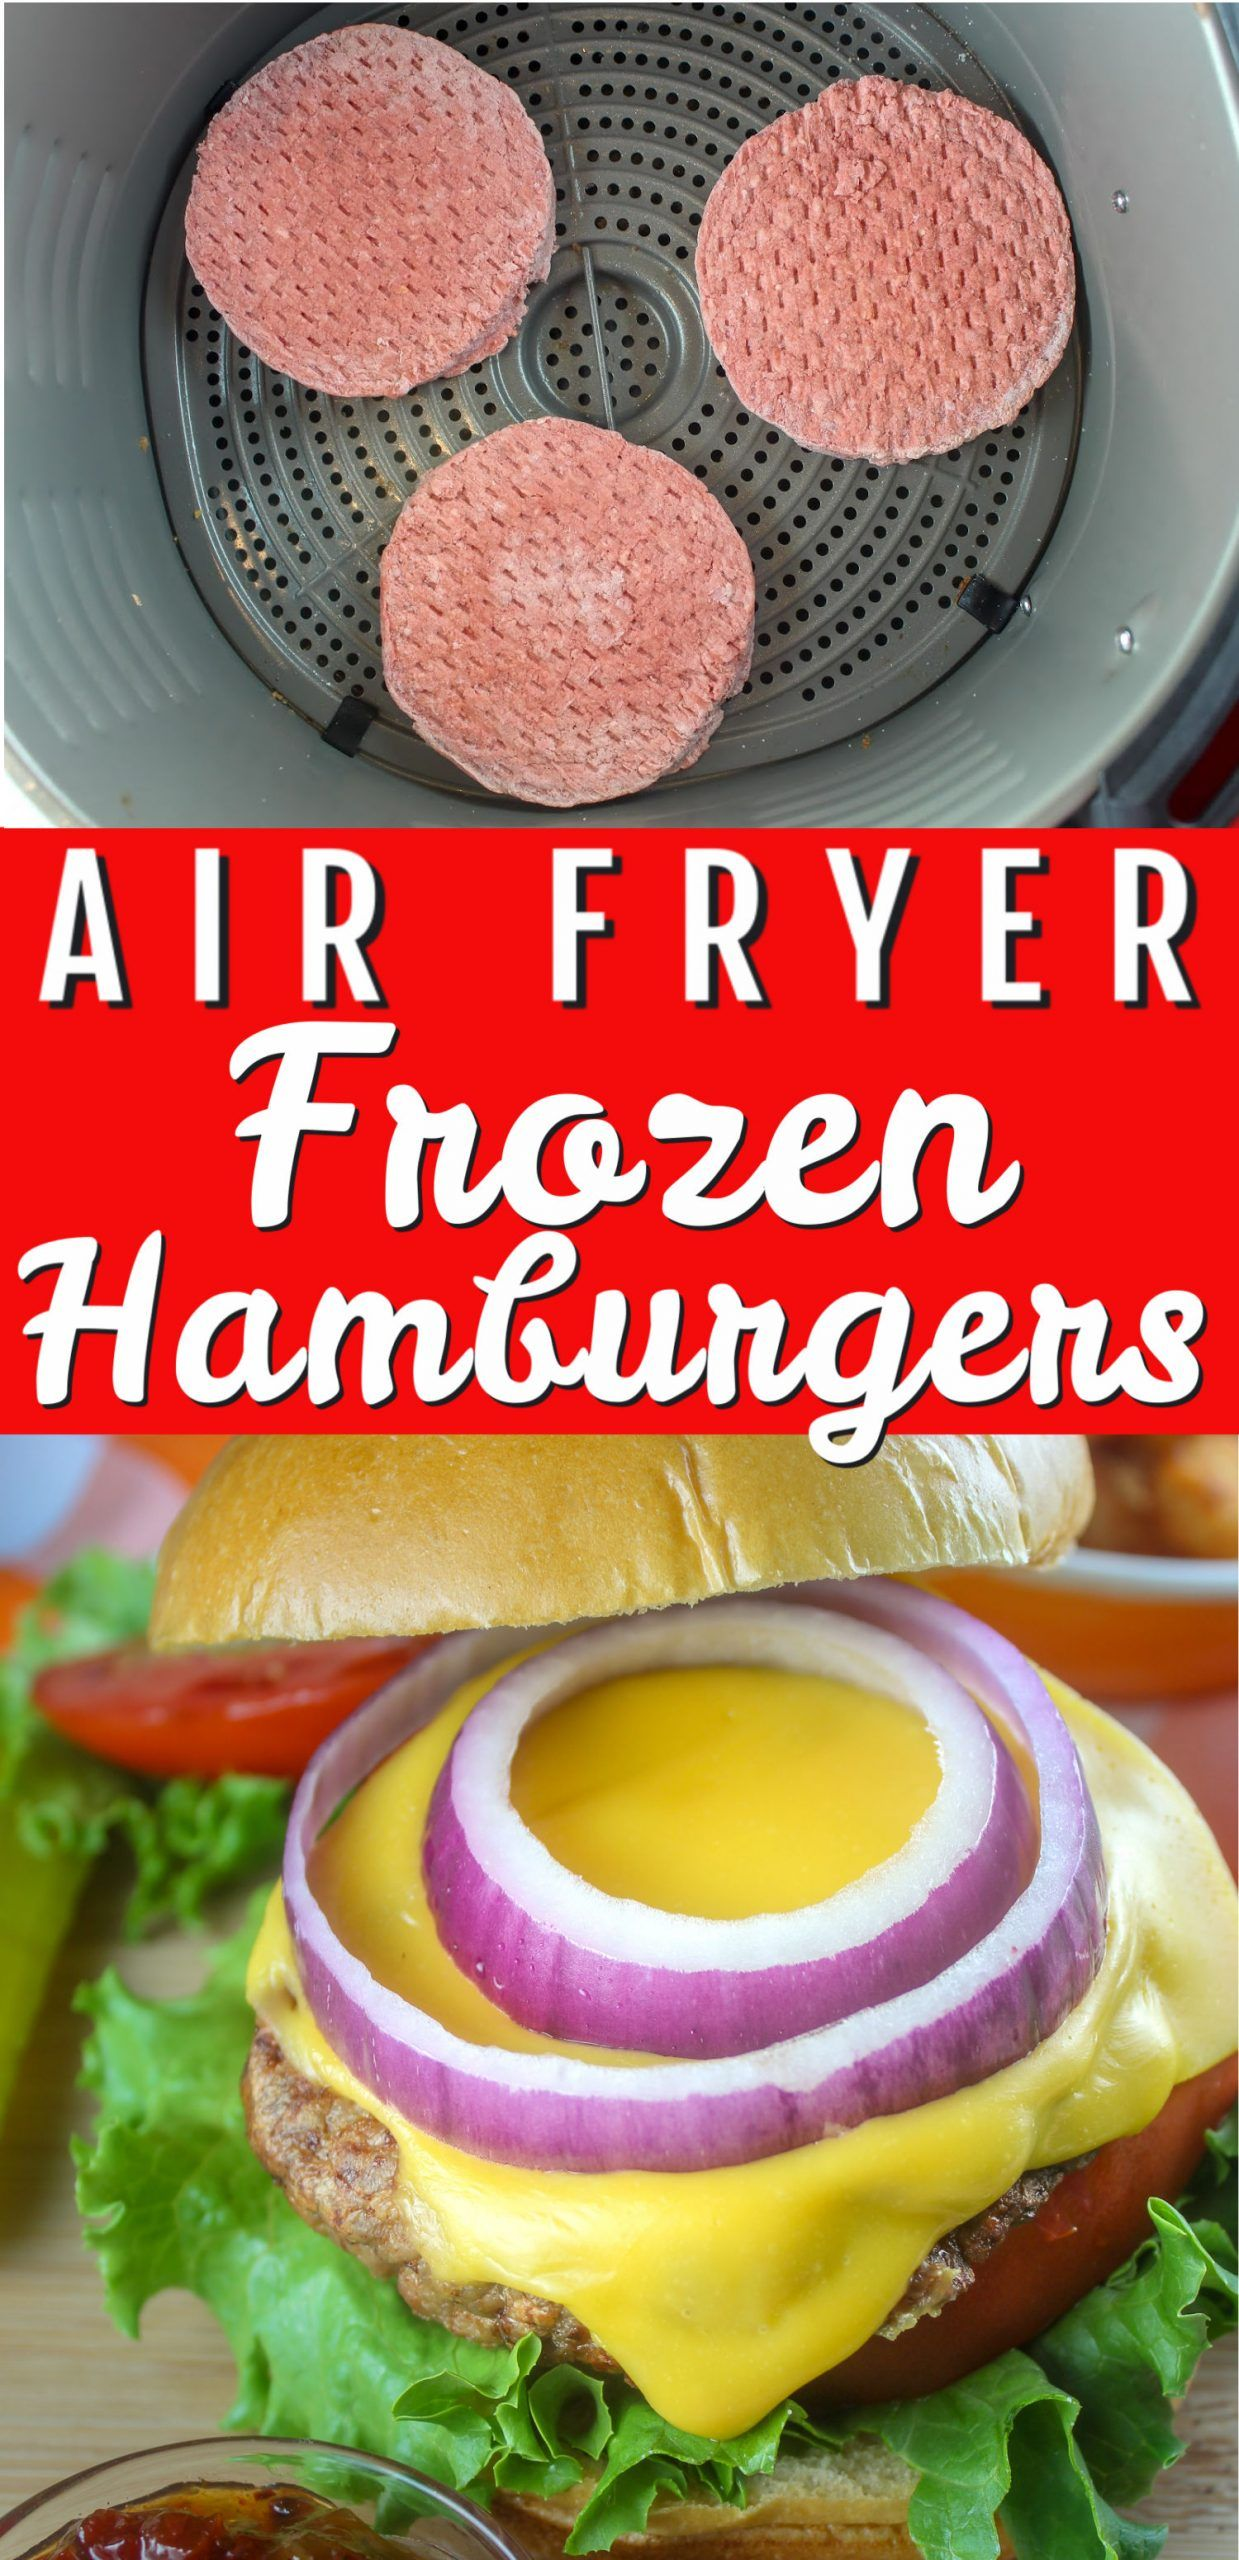 Dinner just got easier making frozen hamburgers in your